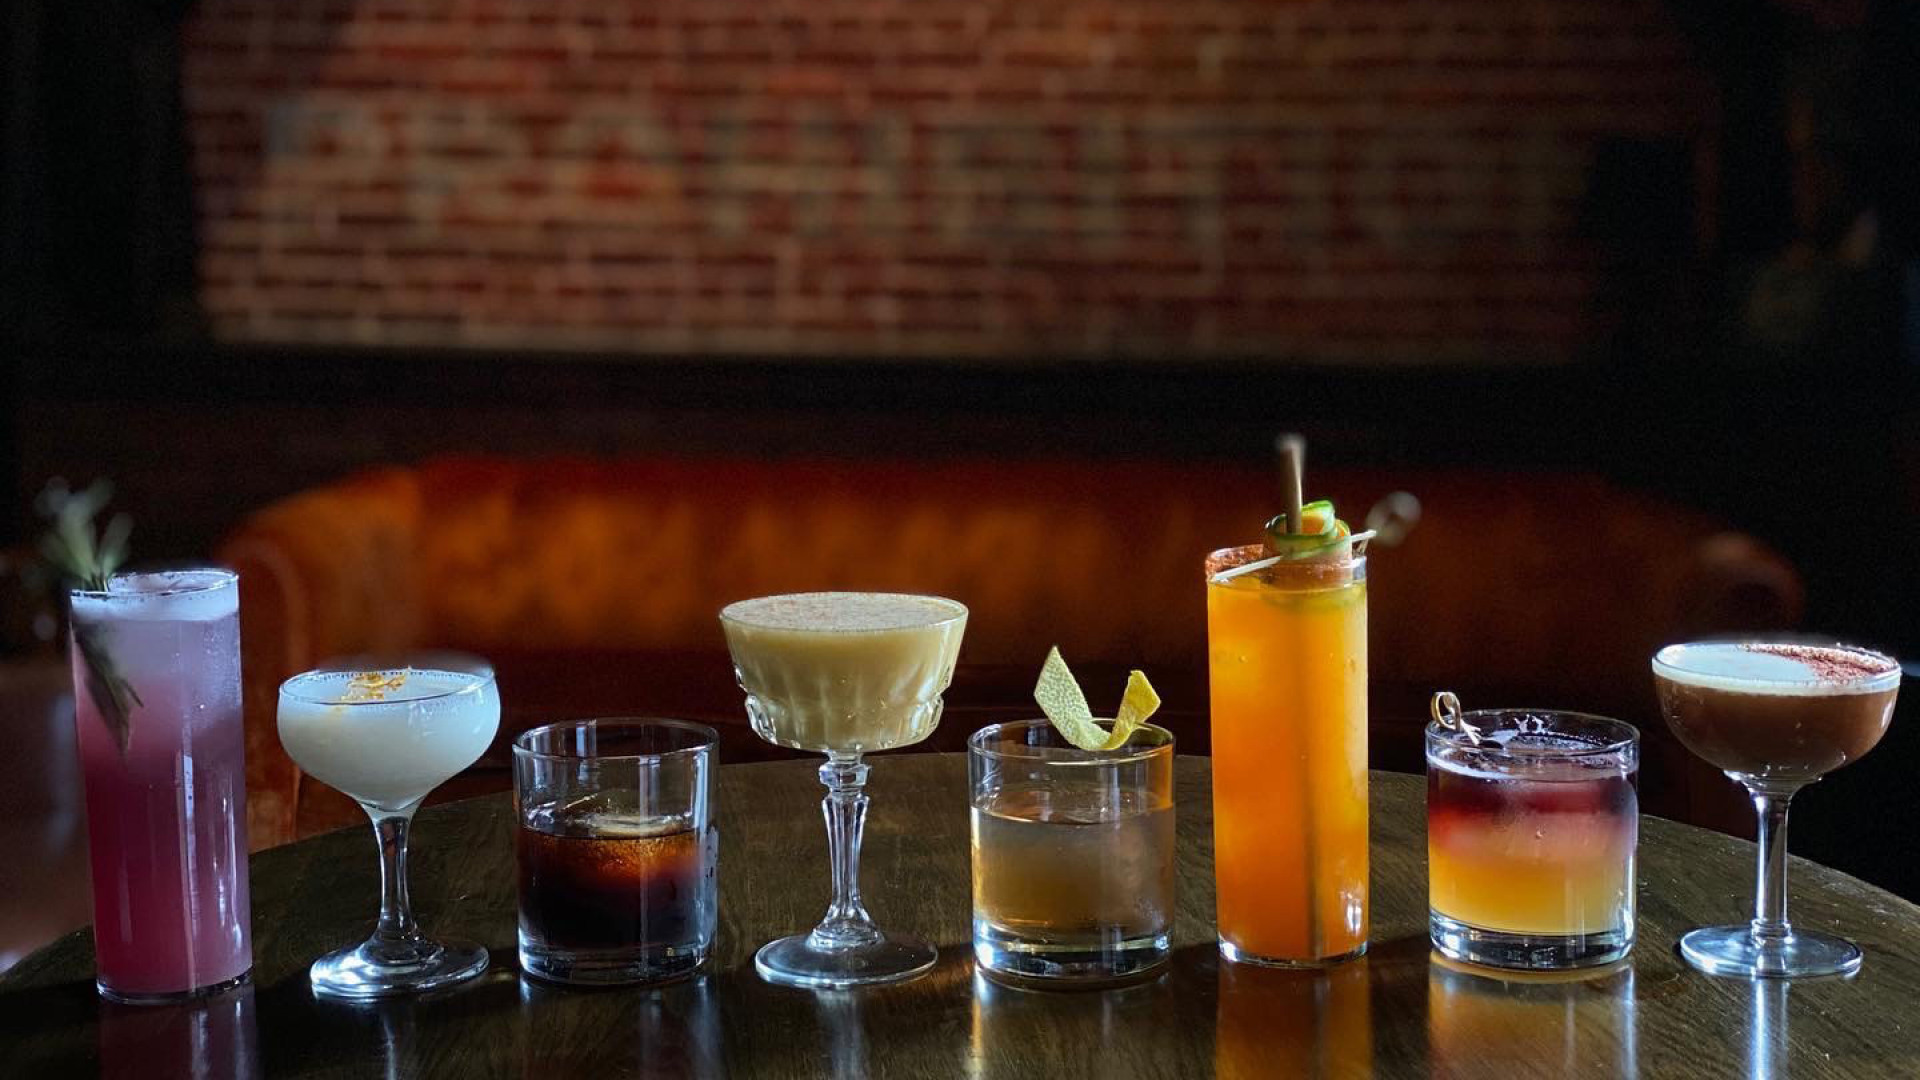 New Hampshire restaurants and activities | A lineup of cocktails at 815 Cocktails and Provisions in Manchester